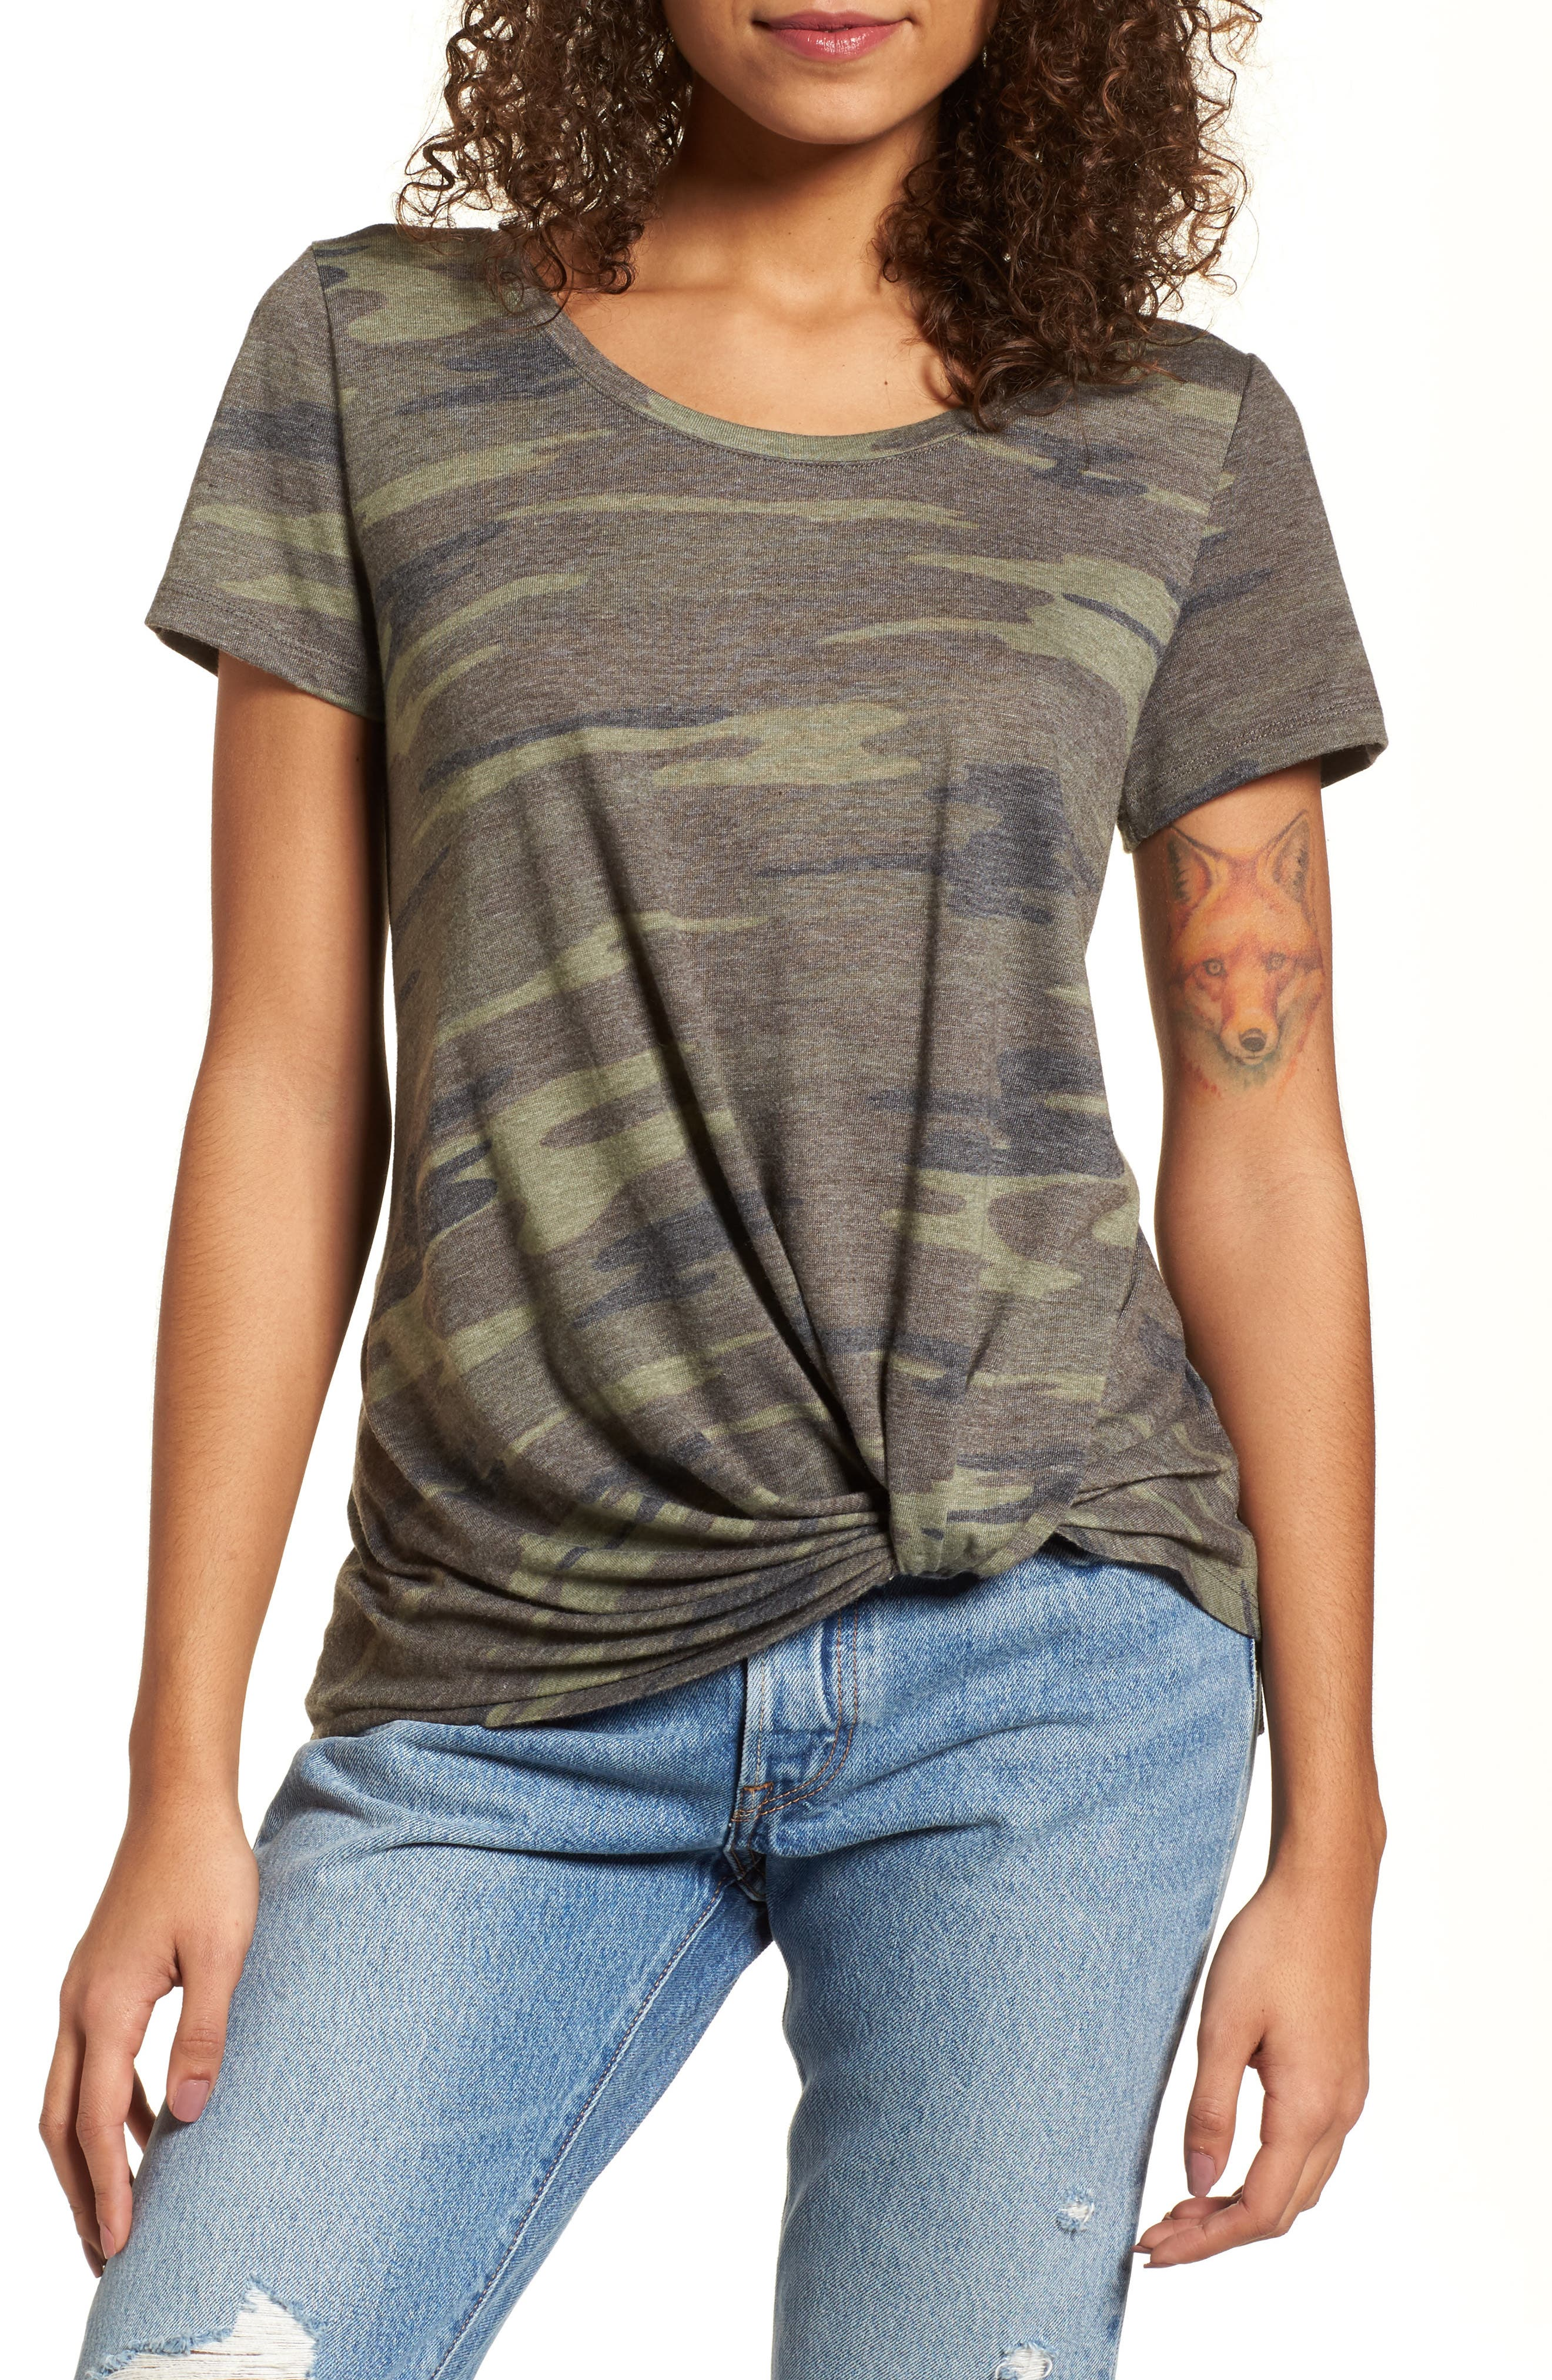 top outfits 2017 from pinterestingplans - camo tee